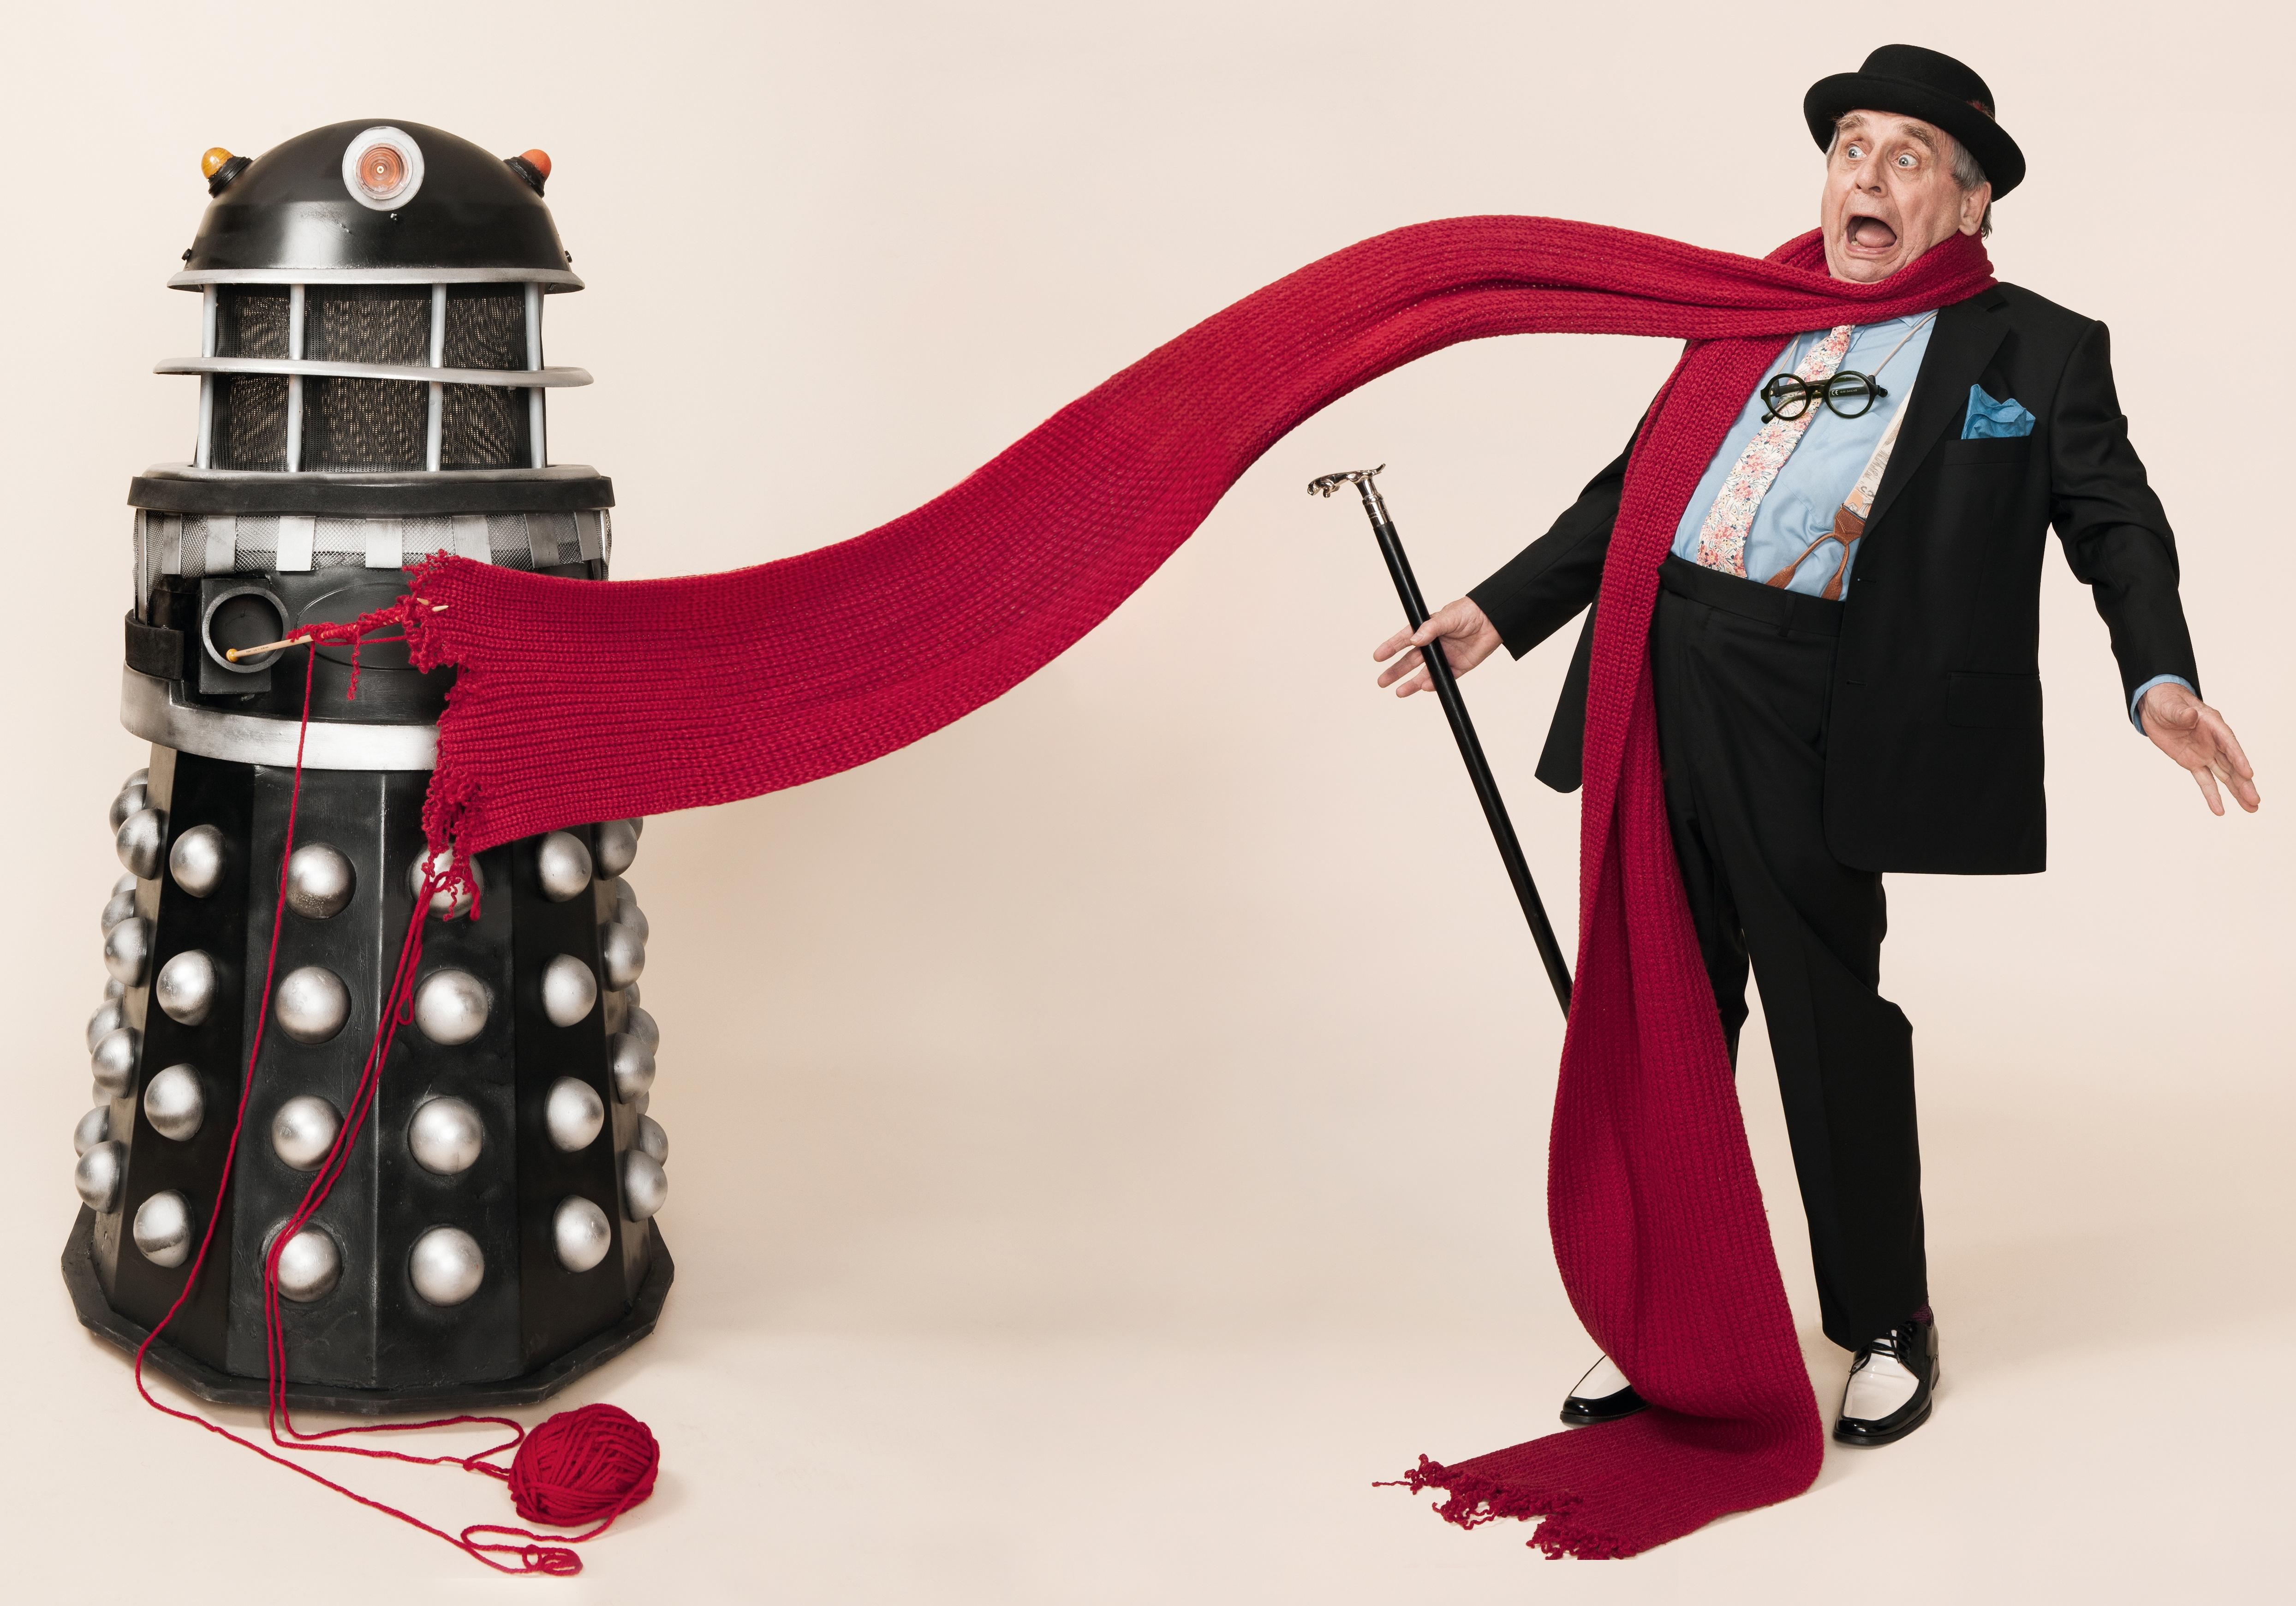 Extermiknit! Extermiknit! Doctor Who scarves tested by a Time Lord